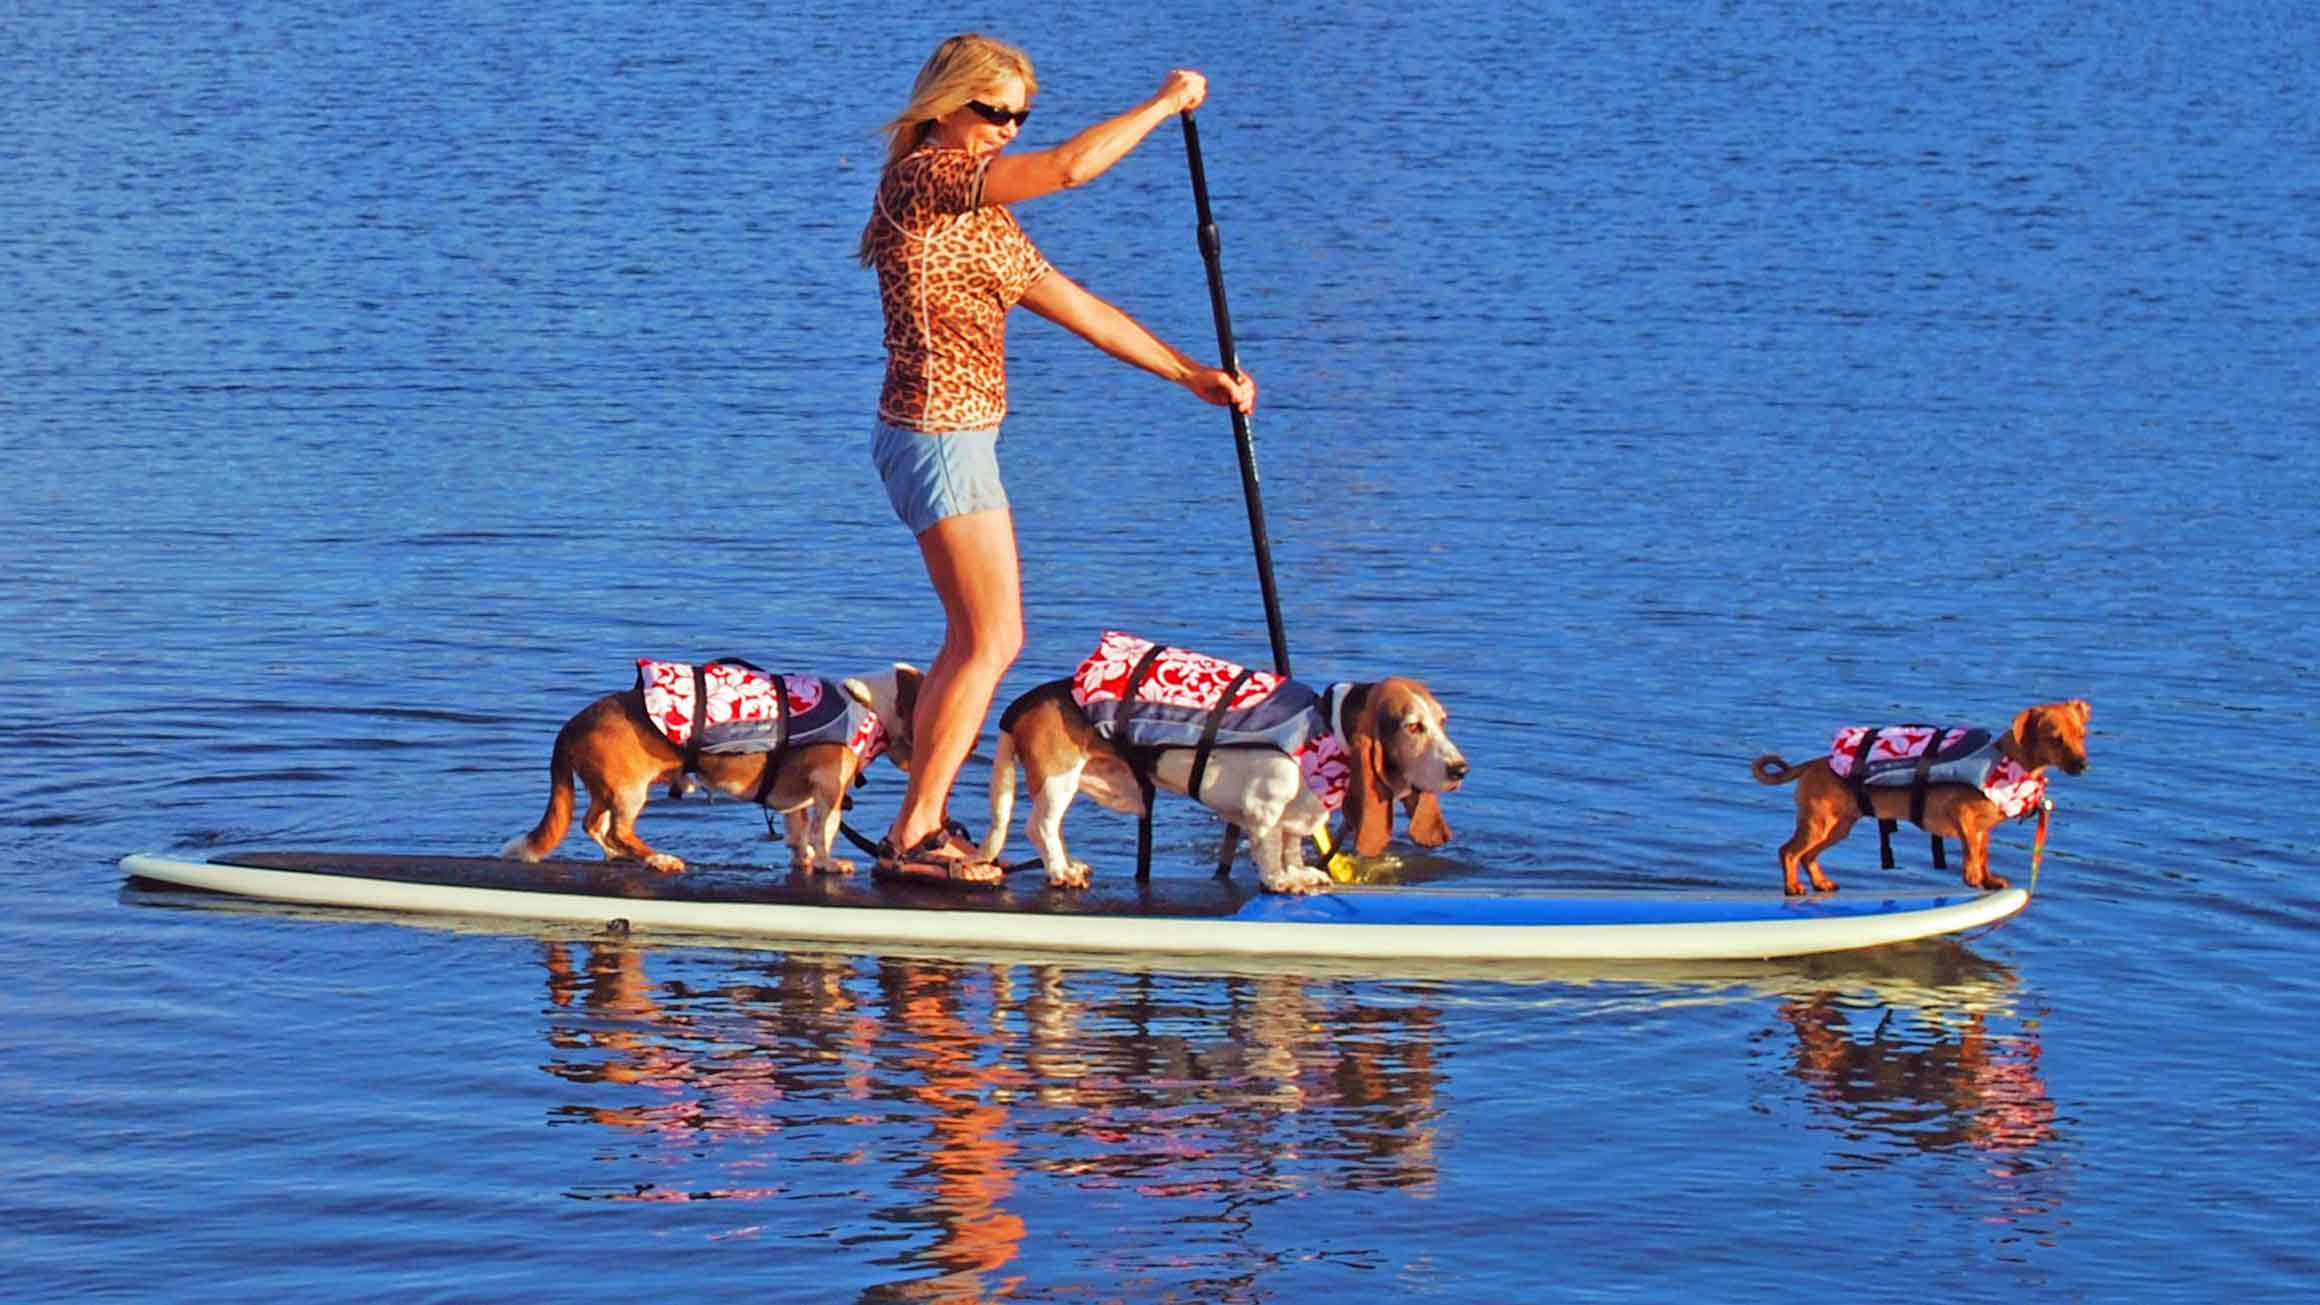 Here we are, SUP pups in Hood River, Oregon on the Columbia River. Our family, the  Dog Diary  team, with me on the nose, of course. We just lost Elvis in May so we're only a 2 pup SUP team now. We carry him with us wherever we go.  Photo copyright Barb Ayers DogDiary.org